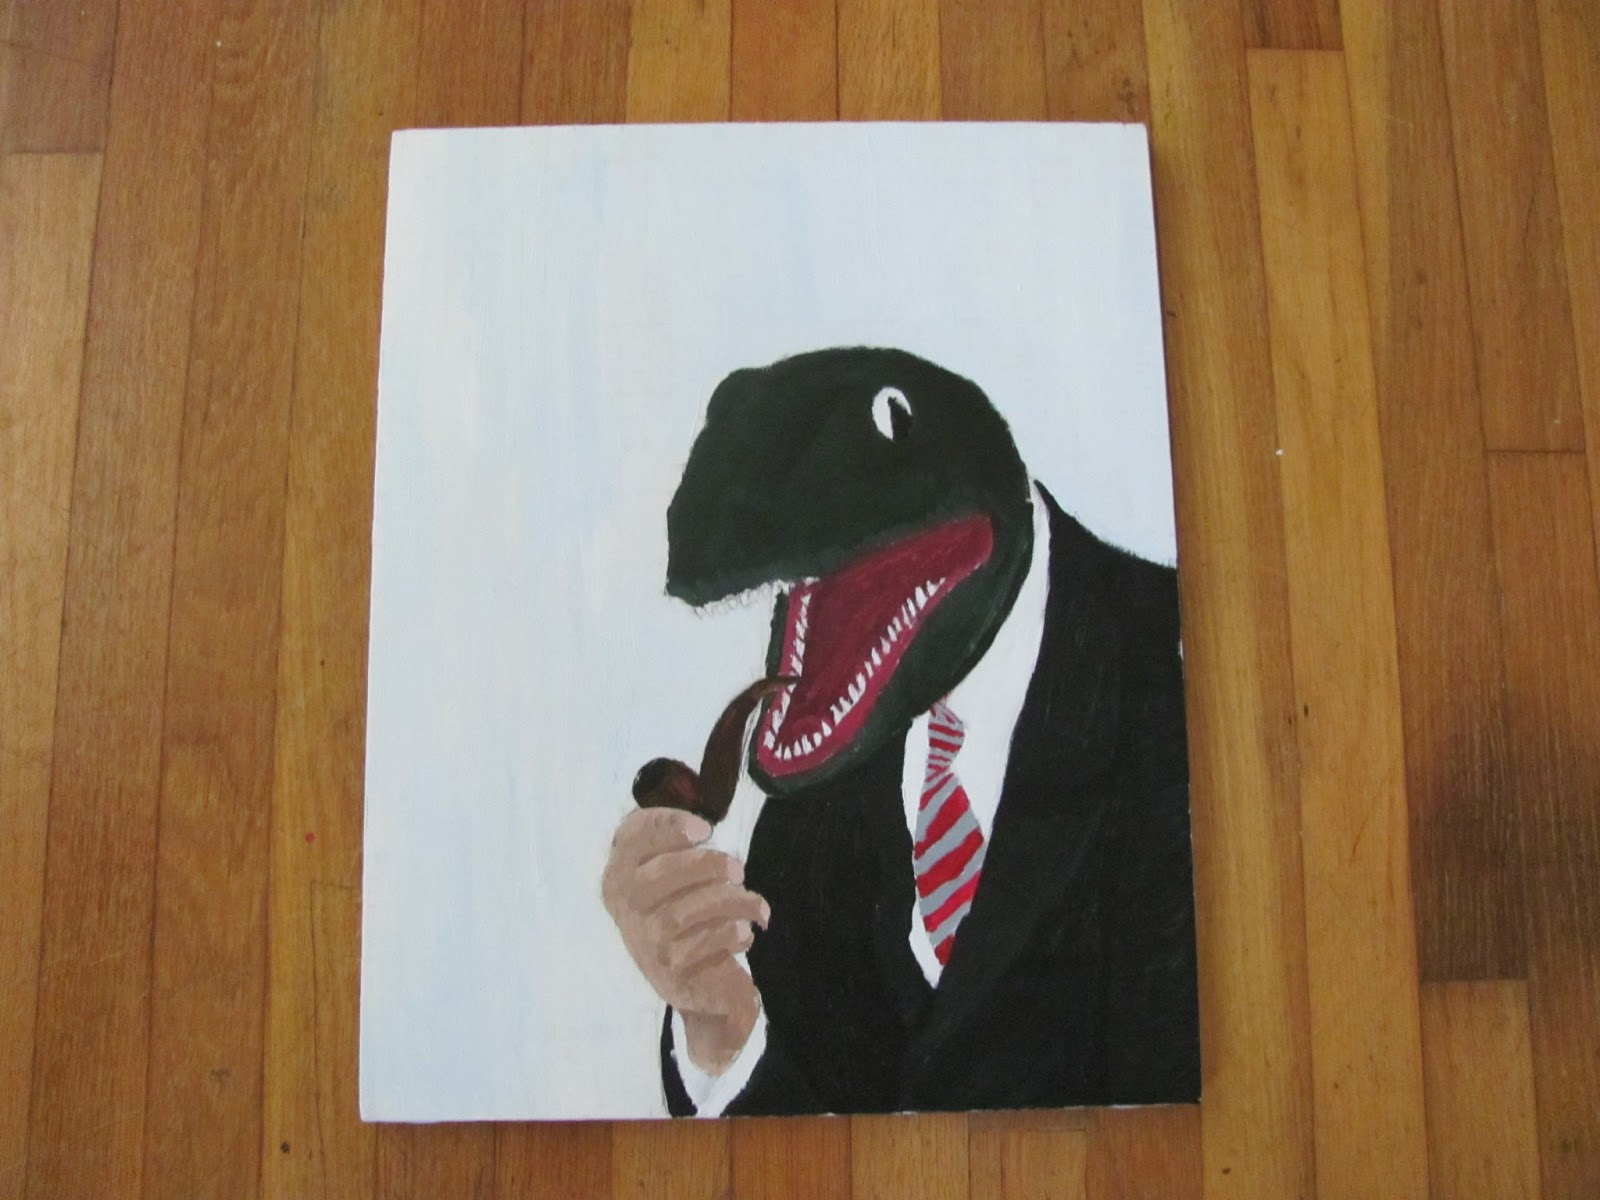 A green dinosaur in a business suit smoking a pipe